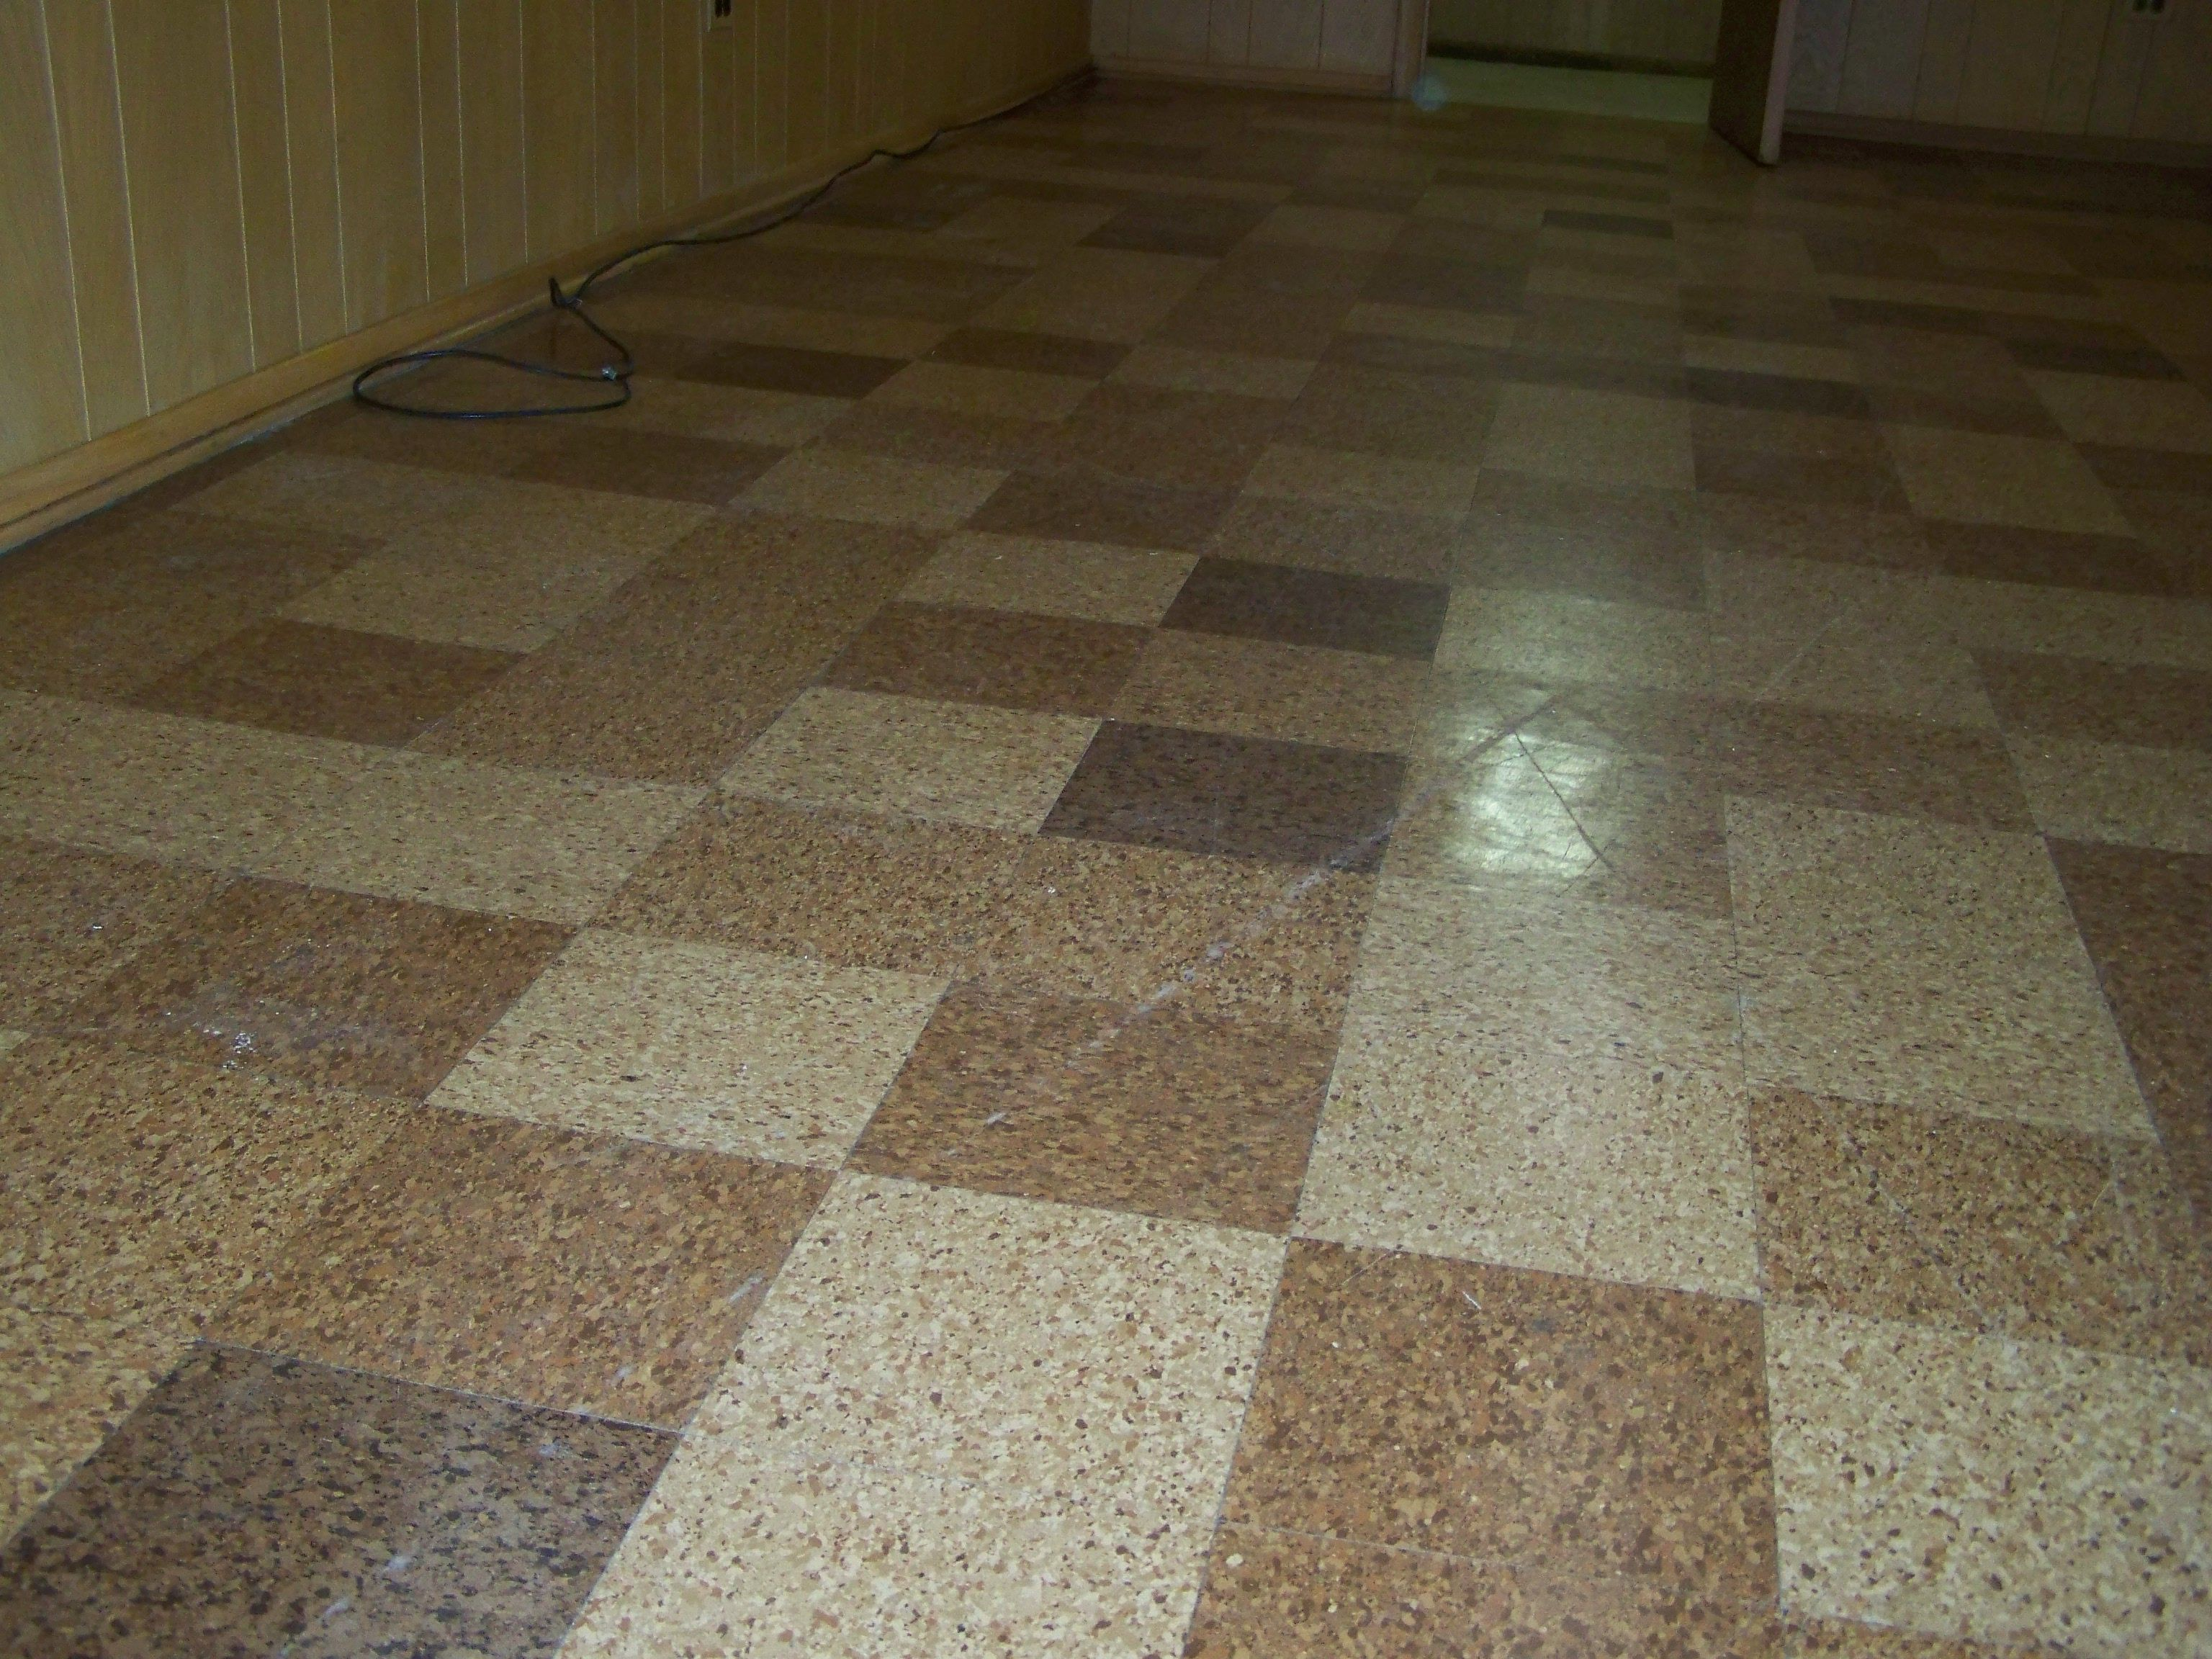 312 850 9010 asbestos floor tile removal company chicago licensed 312 850 9010 asbestos floor tile removal company chicago licensed abatement contractor inspections testing dailygadgetfo Images